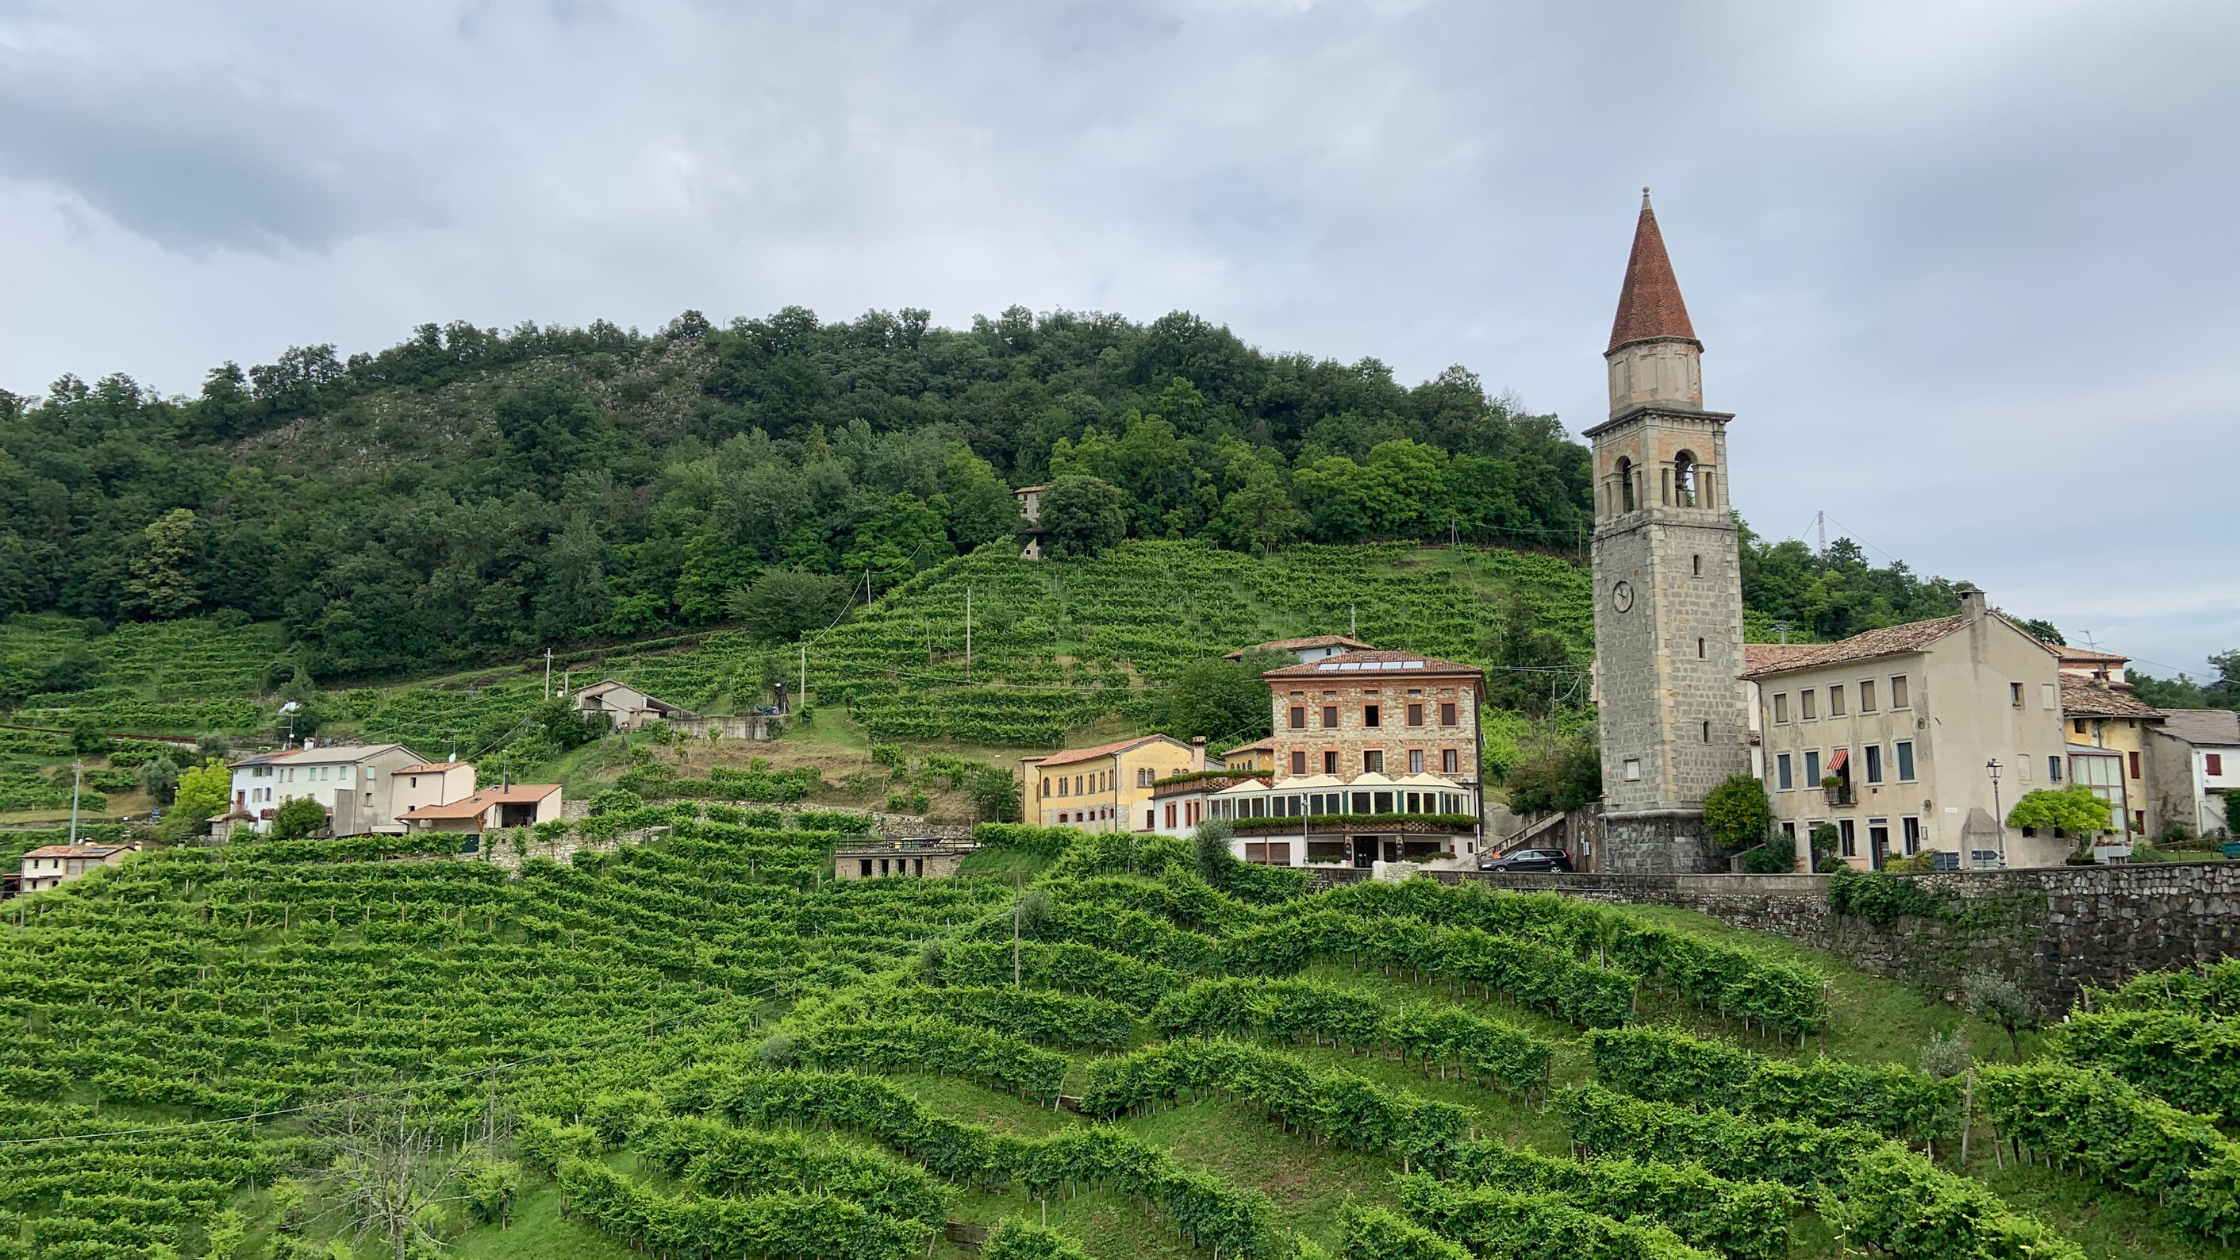 Prosecco: Top Quality Wines and Rides